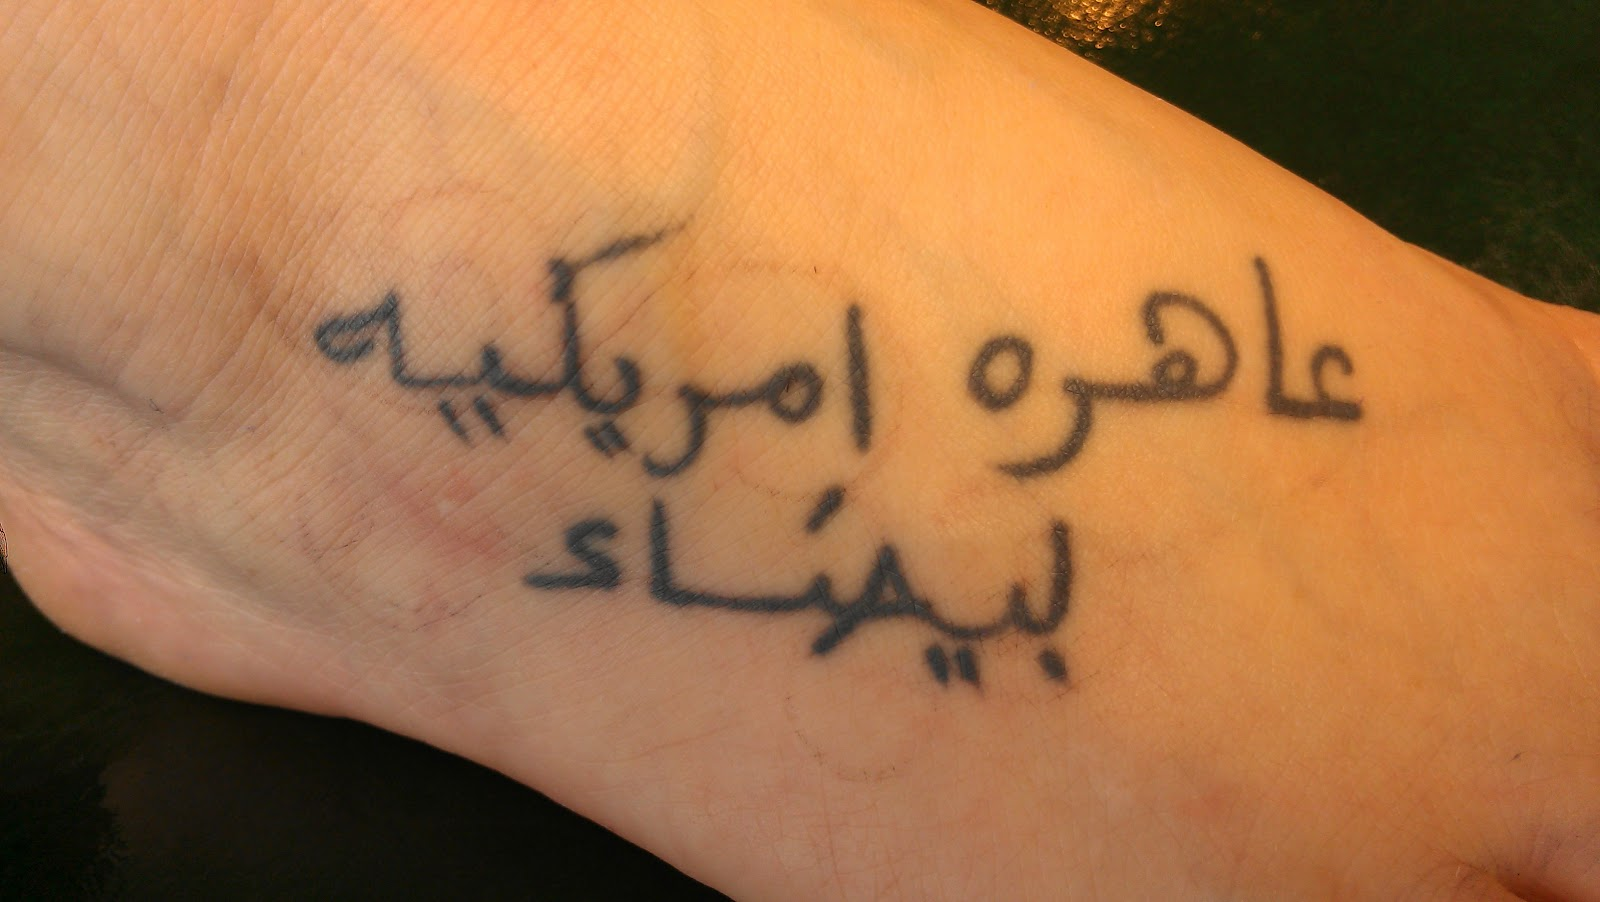 Funny arabic tattoos 25 hd wallpaper funnypicture funny arabic tattoos 25 hd wallpaper buycottarizona Image collections